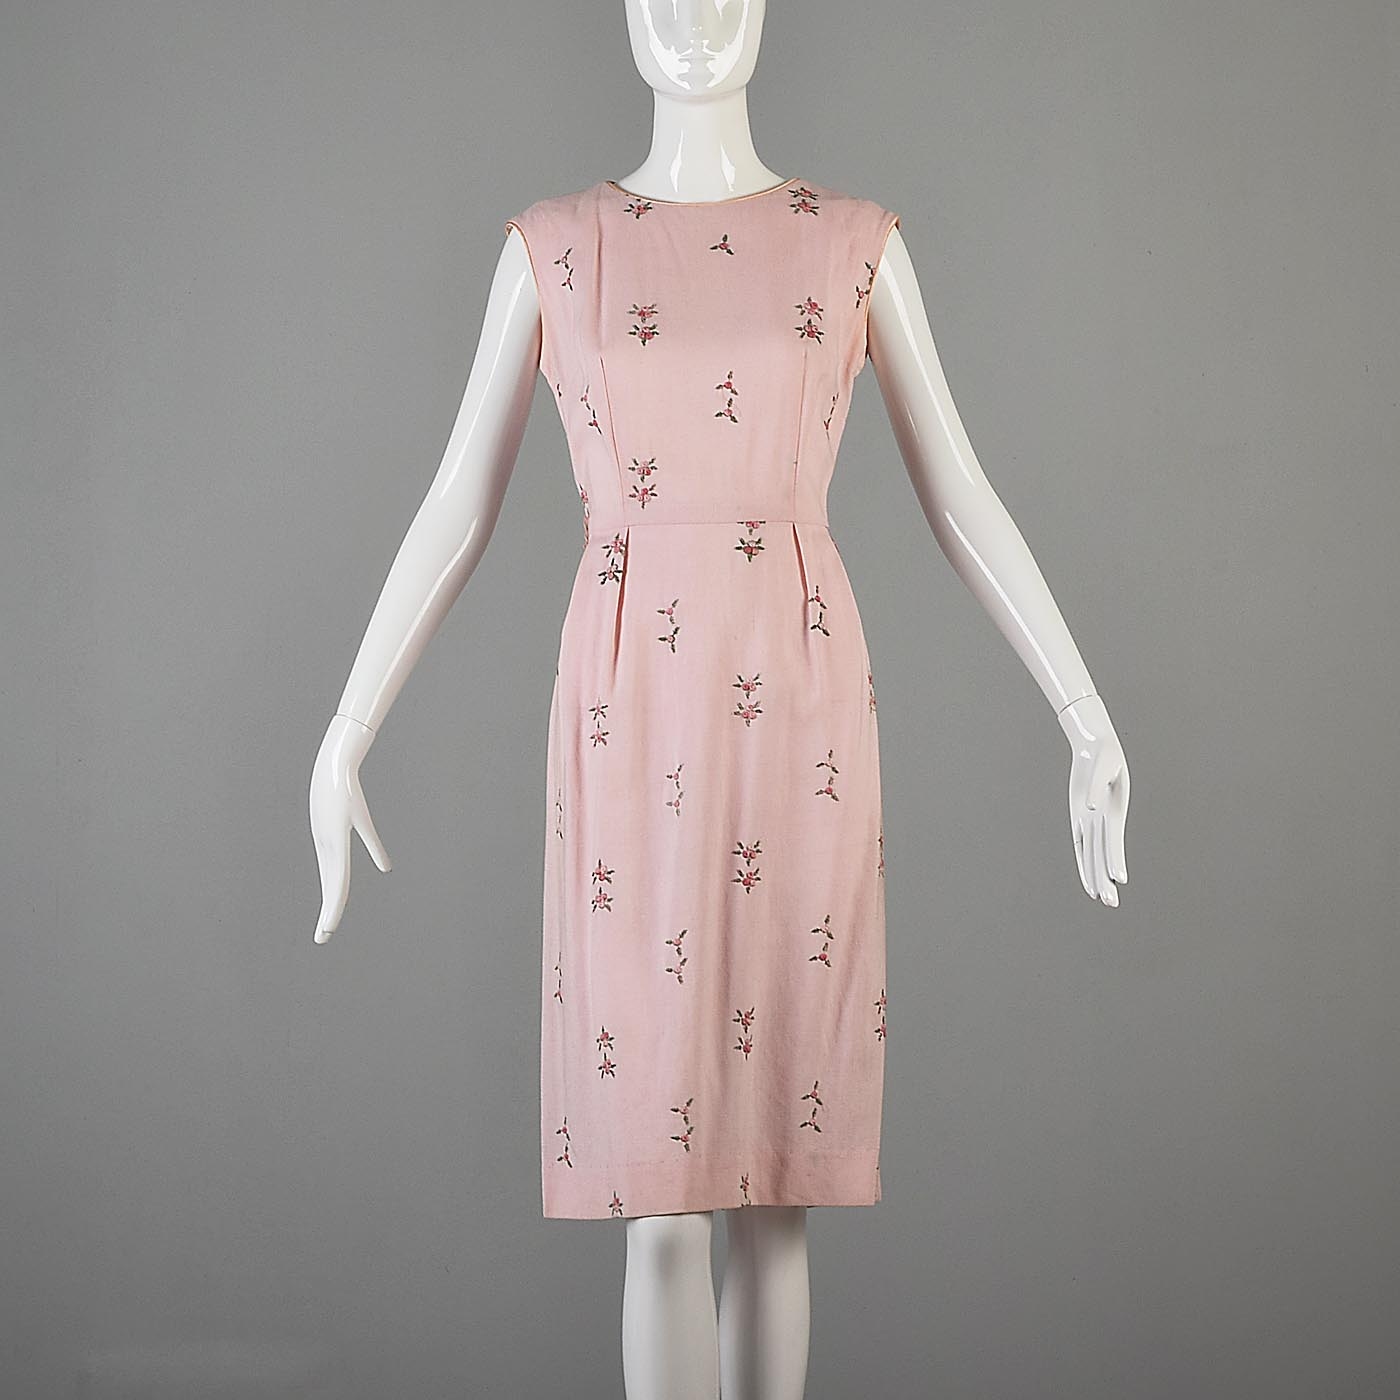 1950s Pink Sleeveless Day Dress with Floral Embroidery